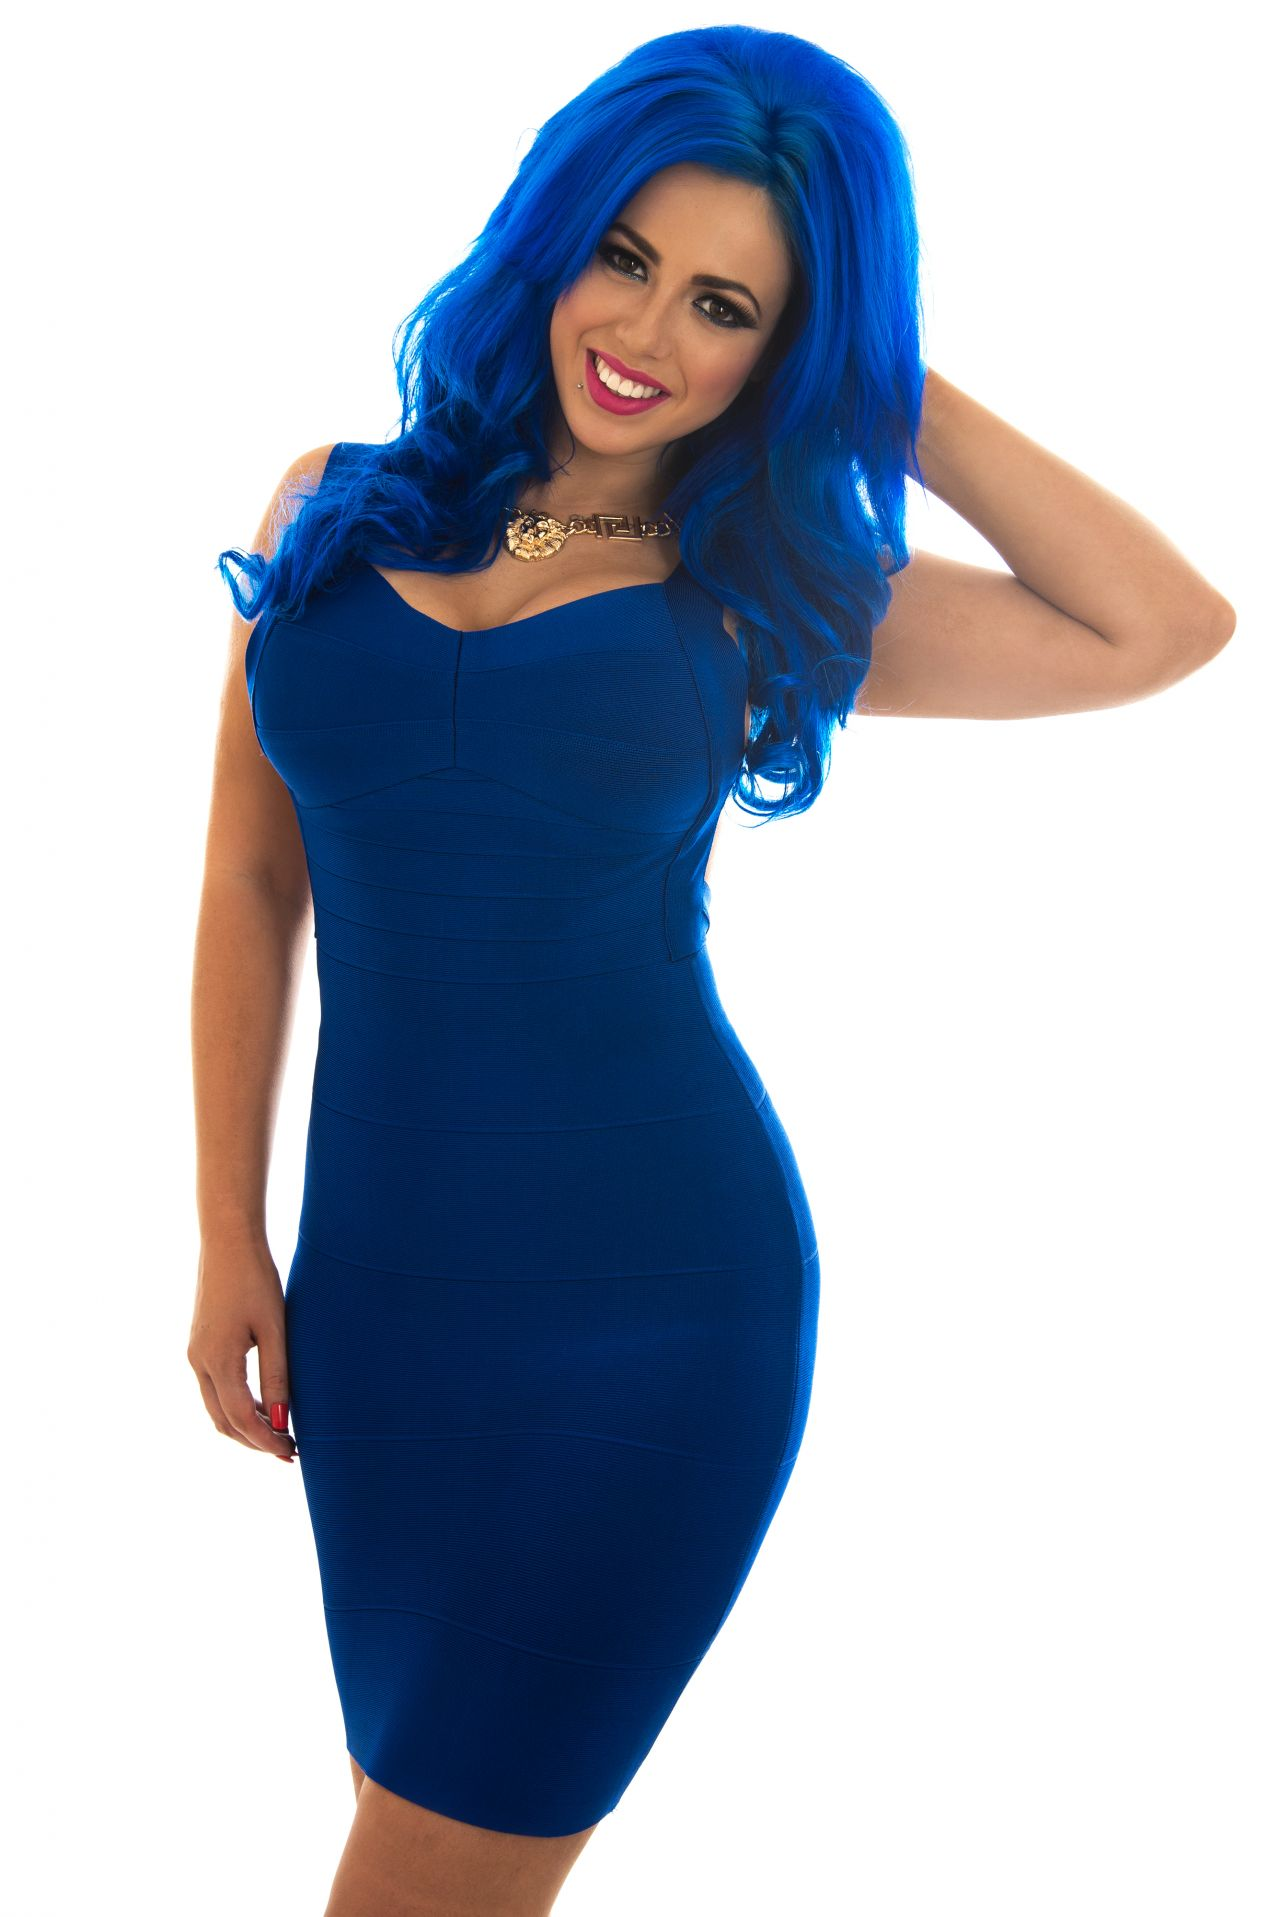 Holly Hagan - Fashion Bible Range Photoshoot